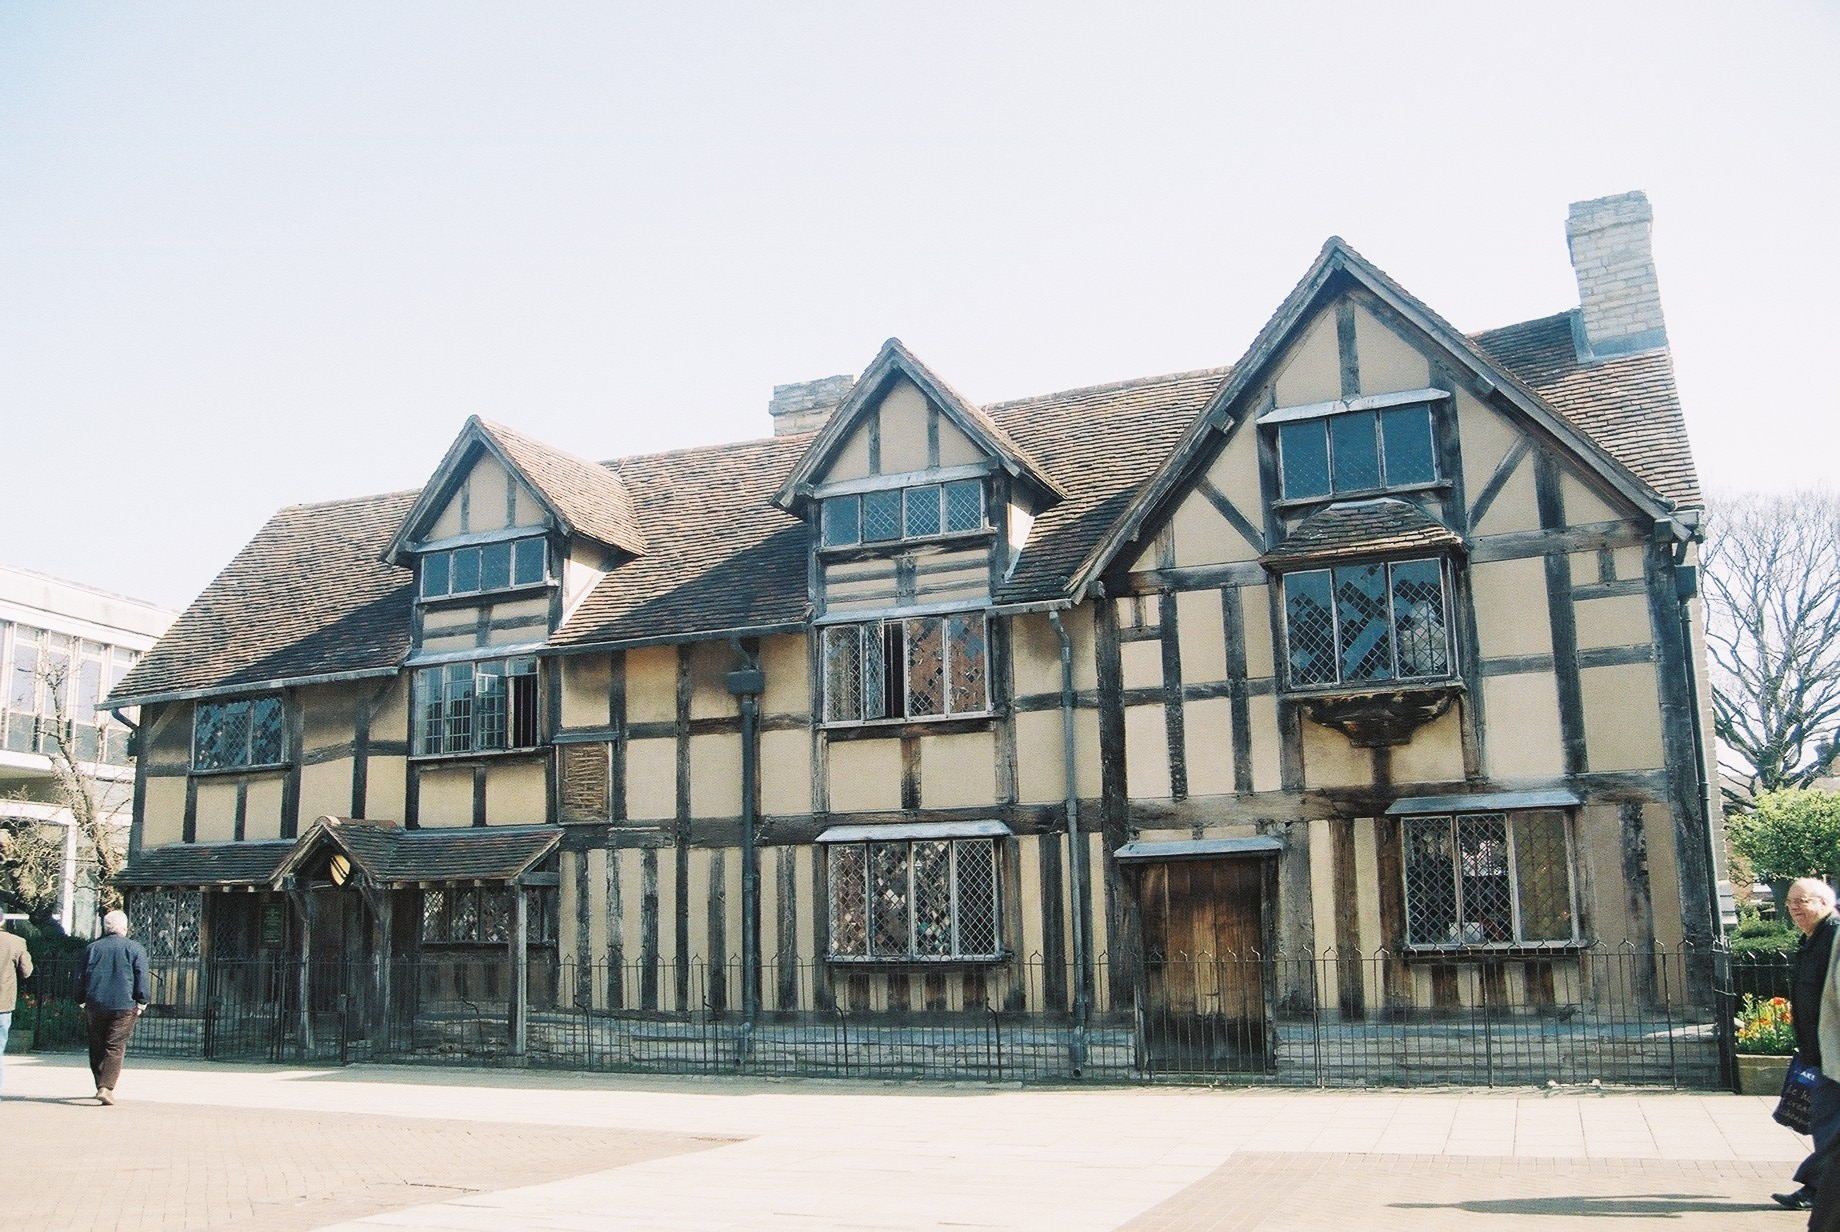 stratford upon avon girls Enjoy shakespeare country with the 4-star mercure stratford upon avon shakespeare hotel set in the town centre, close to attractions visit accorhotelscom.